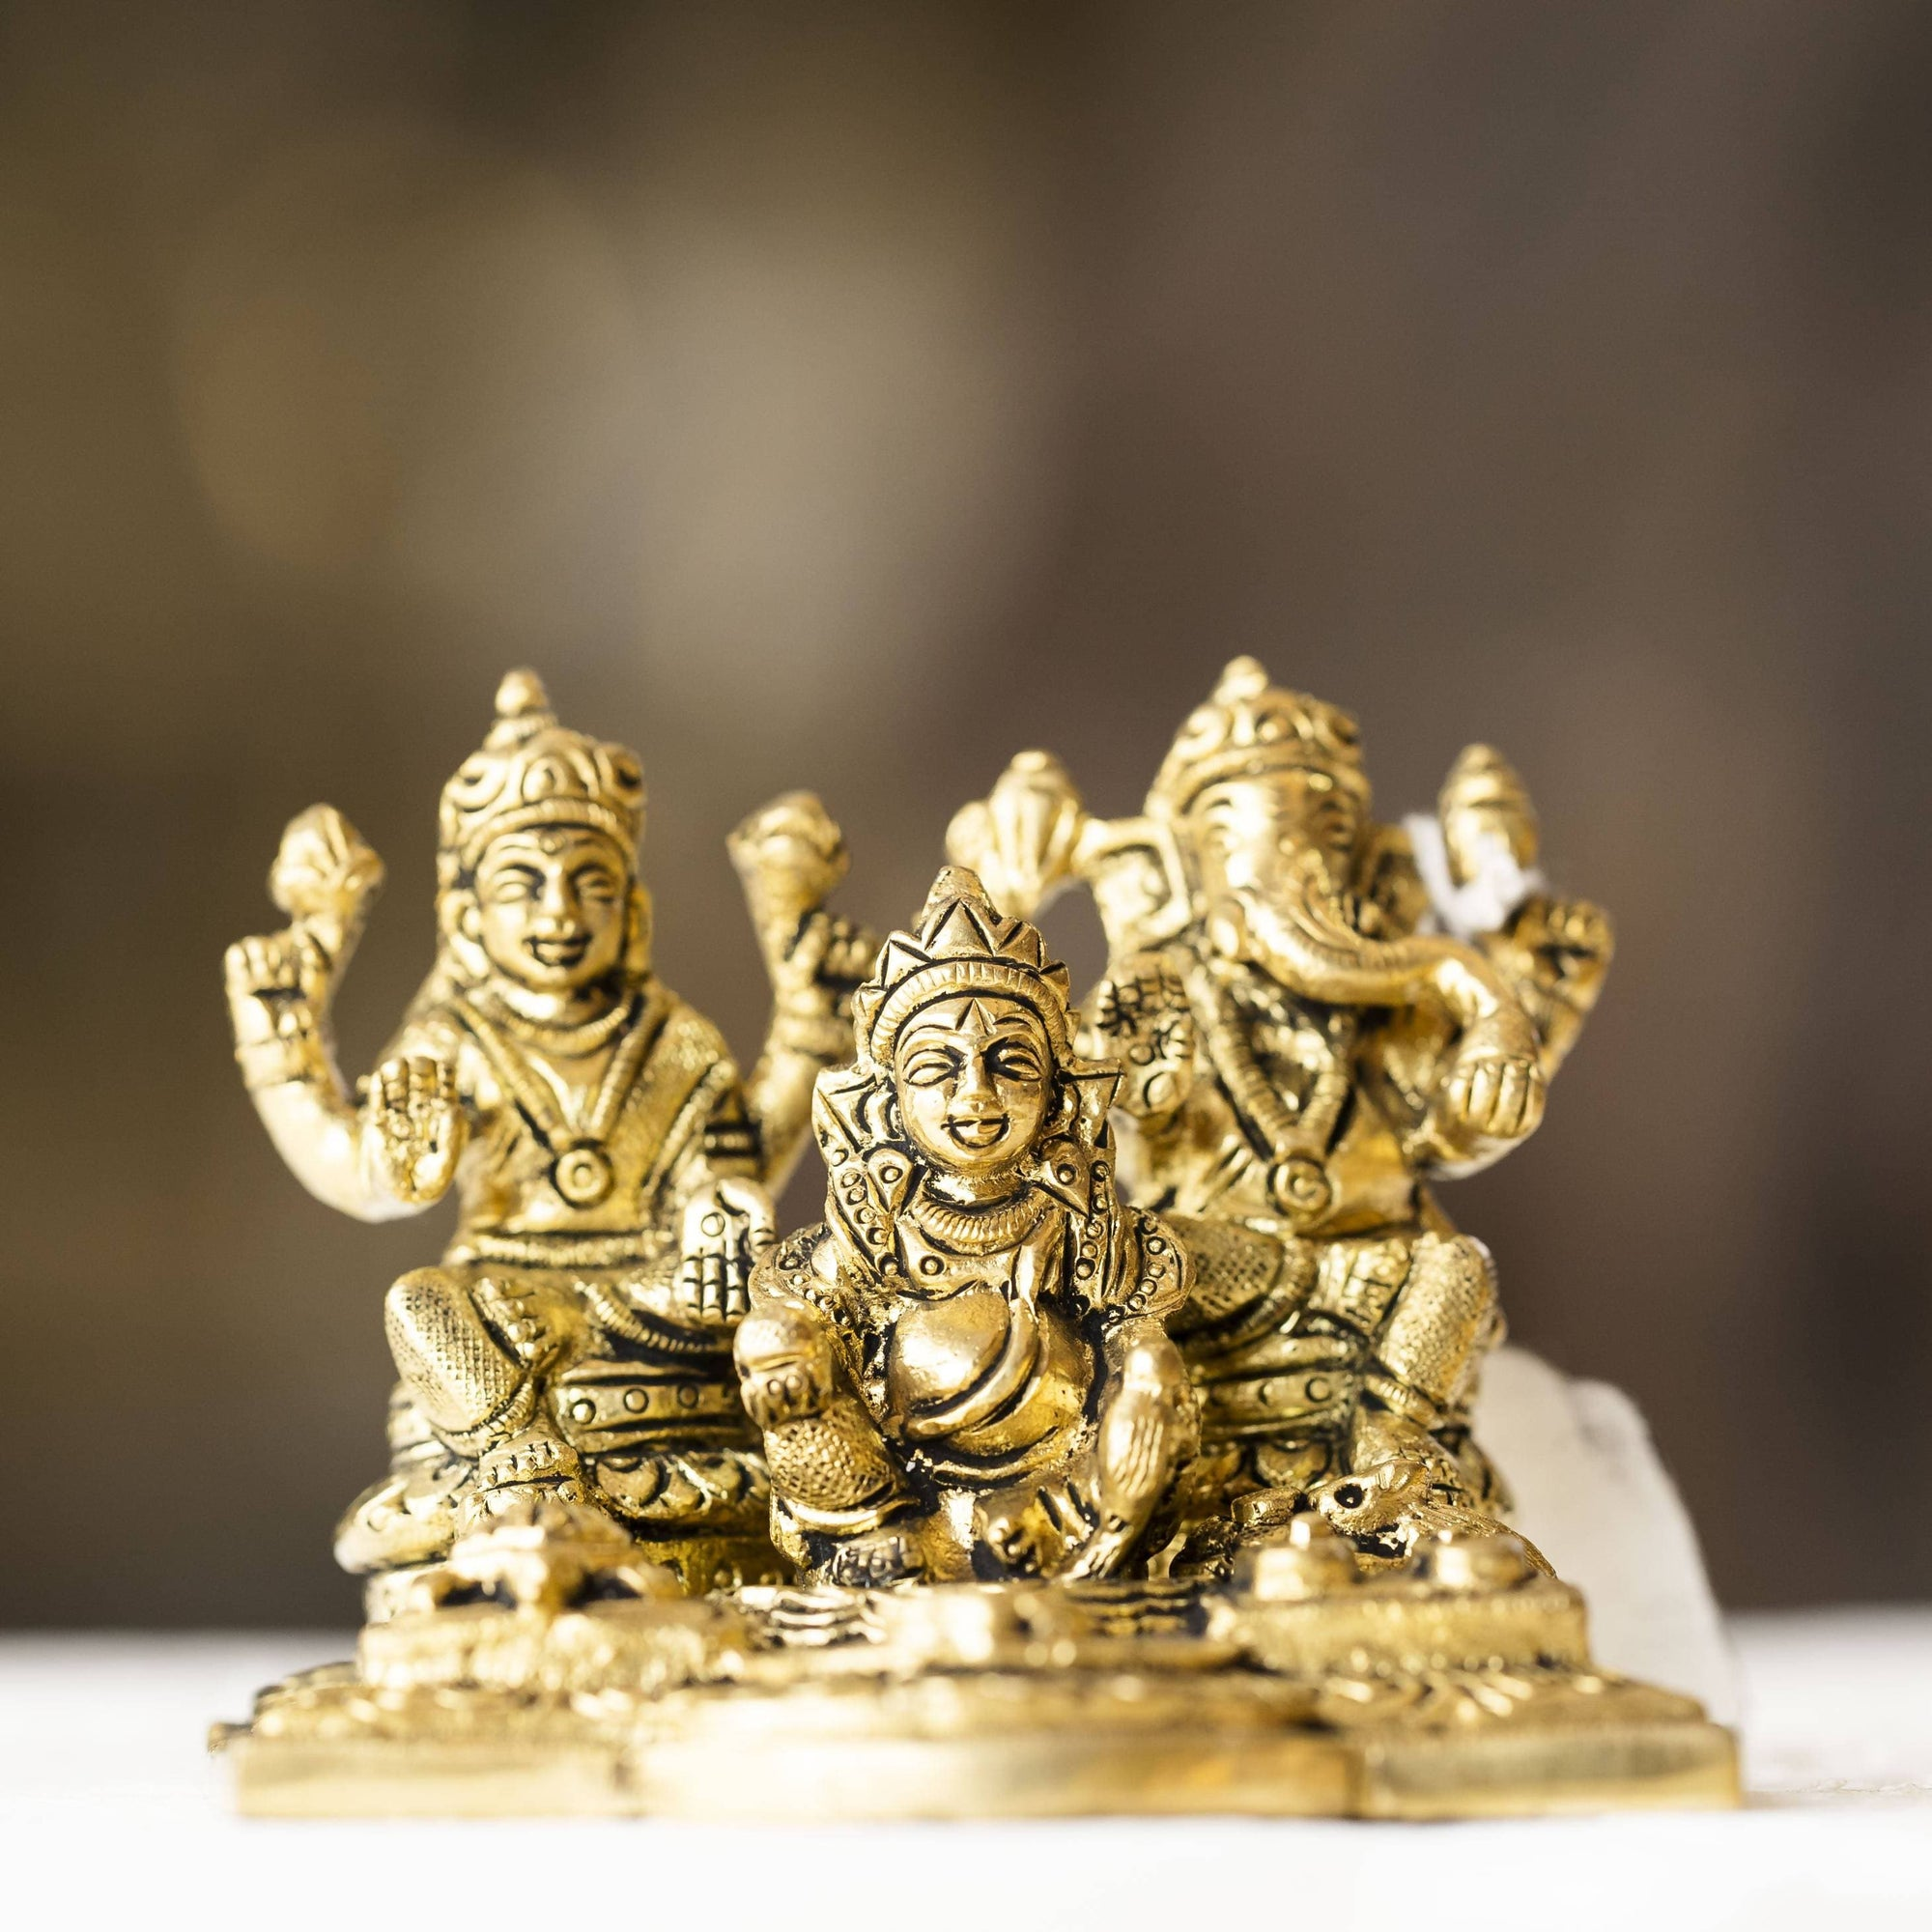 Myoksha Kubera Lakshmi Ganapathi Brass Idol - For Prosperity